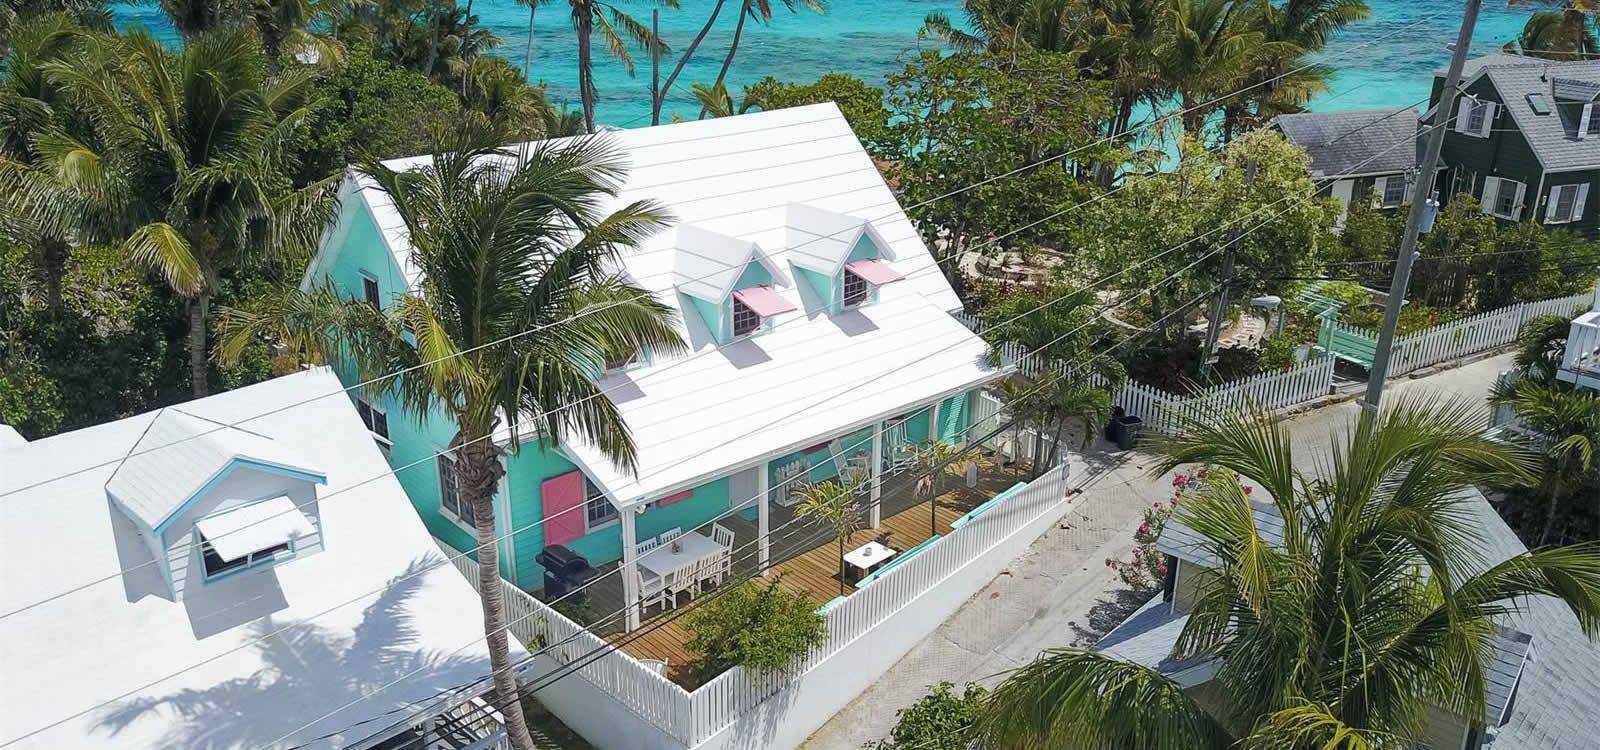 Abaco Elbow Cay Hope Town Beach House For Sale 3 Bedroom also st Barths besides Property For Sale likewise 7 Caribbean Beachfront Homes Under 500k also SteelesAutoSupplies. on anguilla real estate home for sale